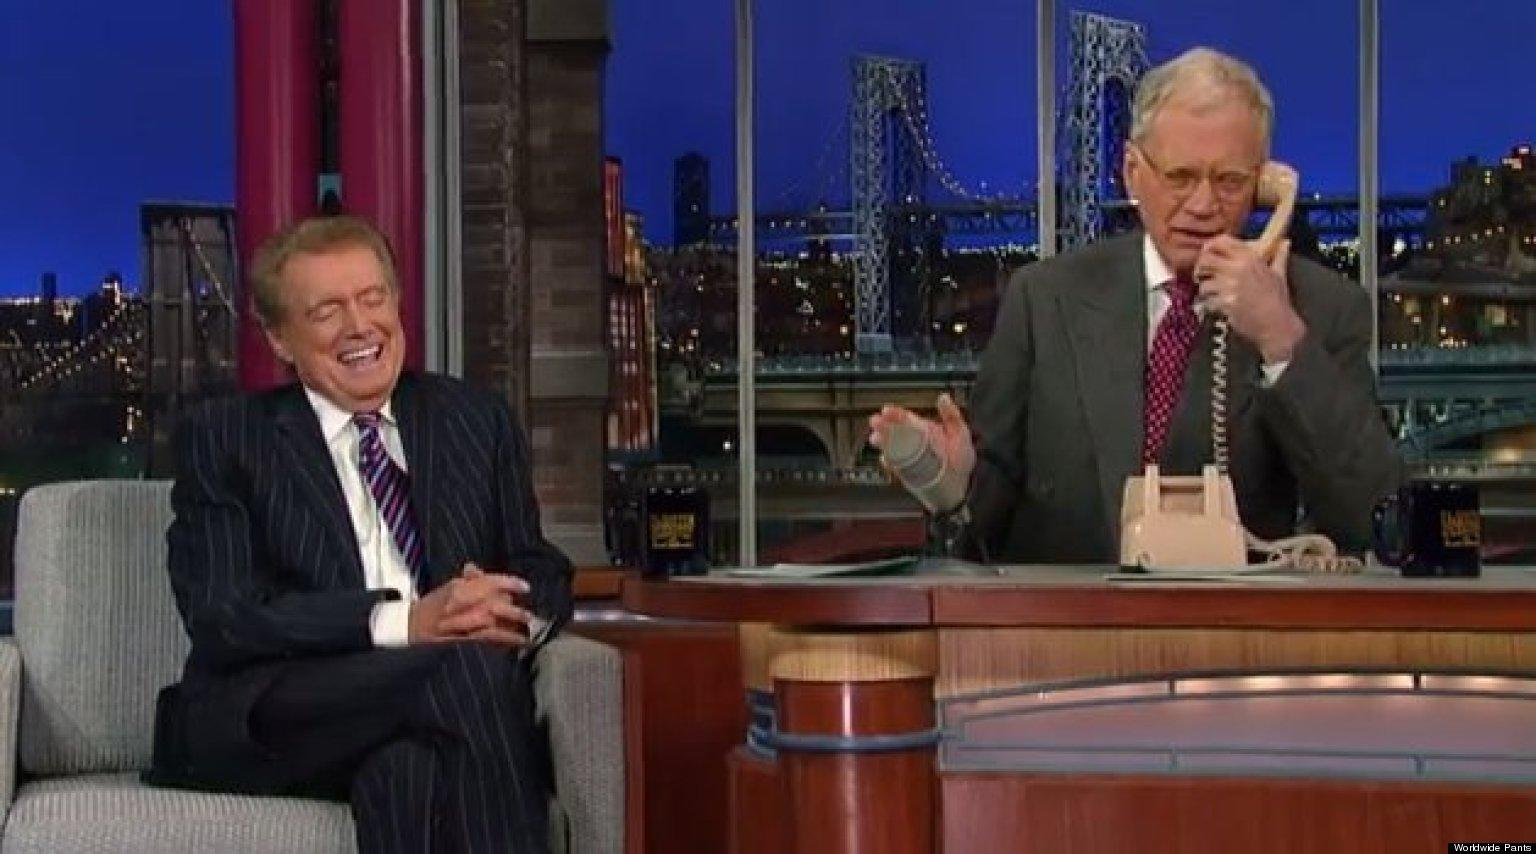 David Letterman To Appear On 'Late Late Show' Hosted By Regis Philbin